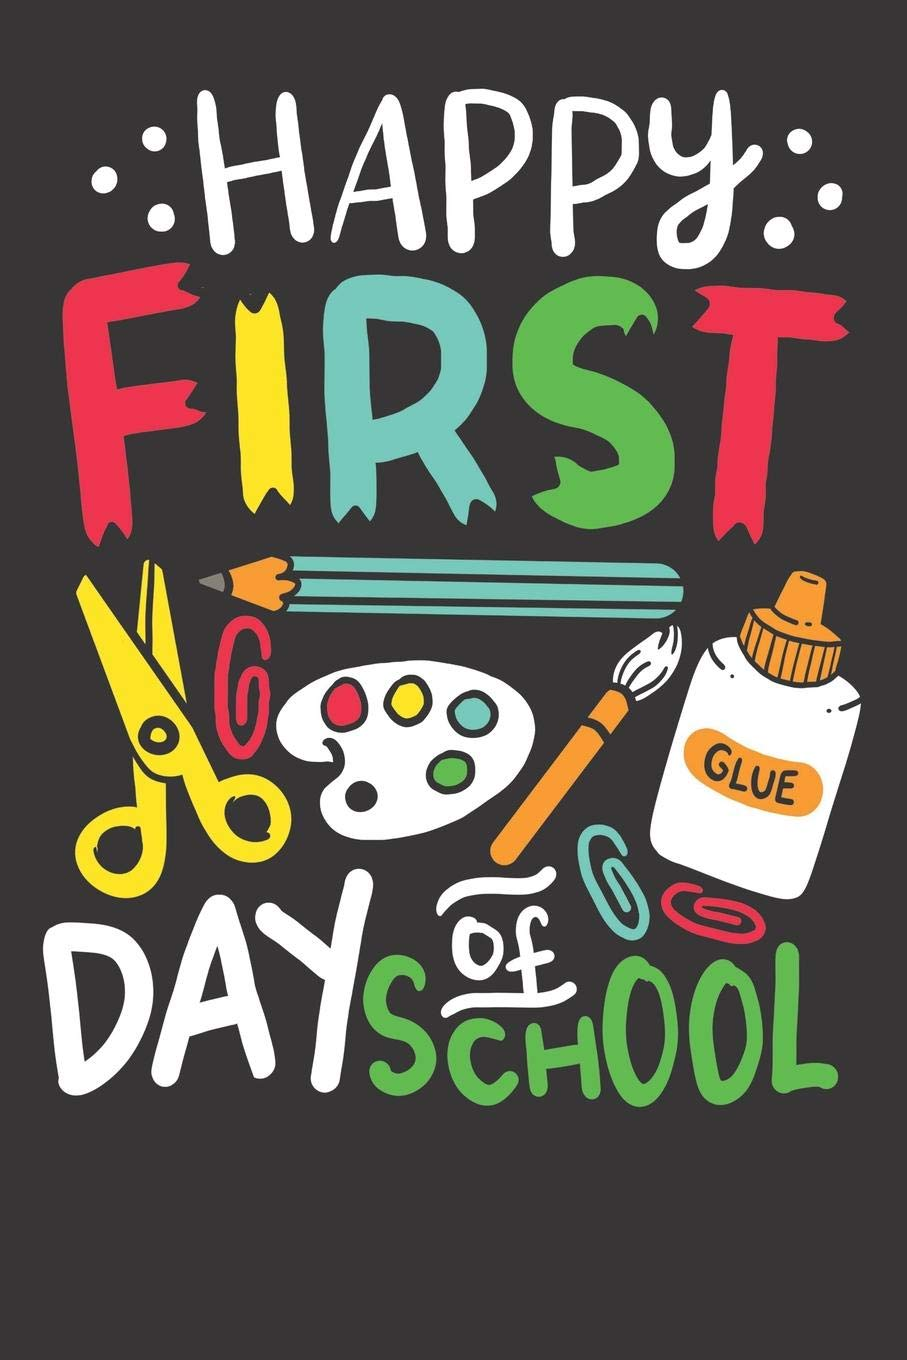 First Day of School Notebook: Happy First Day Of School Teacher Gift Funny  Pre K Stundent 6x9 College Ruled 120 Pages Student Teacher School:  Publishing, Charlottytom 15: 9781079530513: Amazon.com: Books